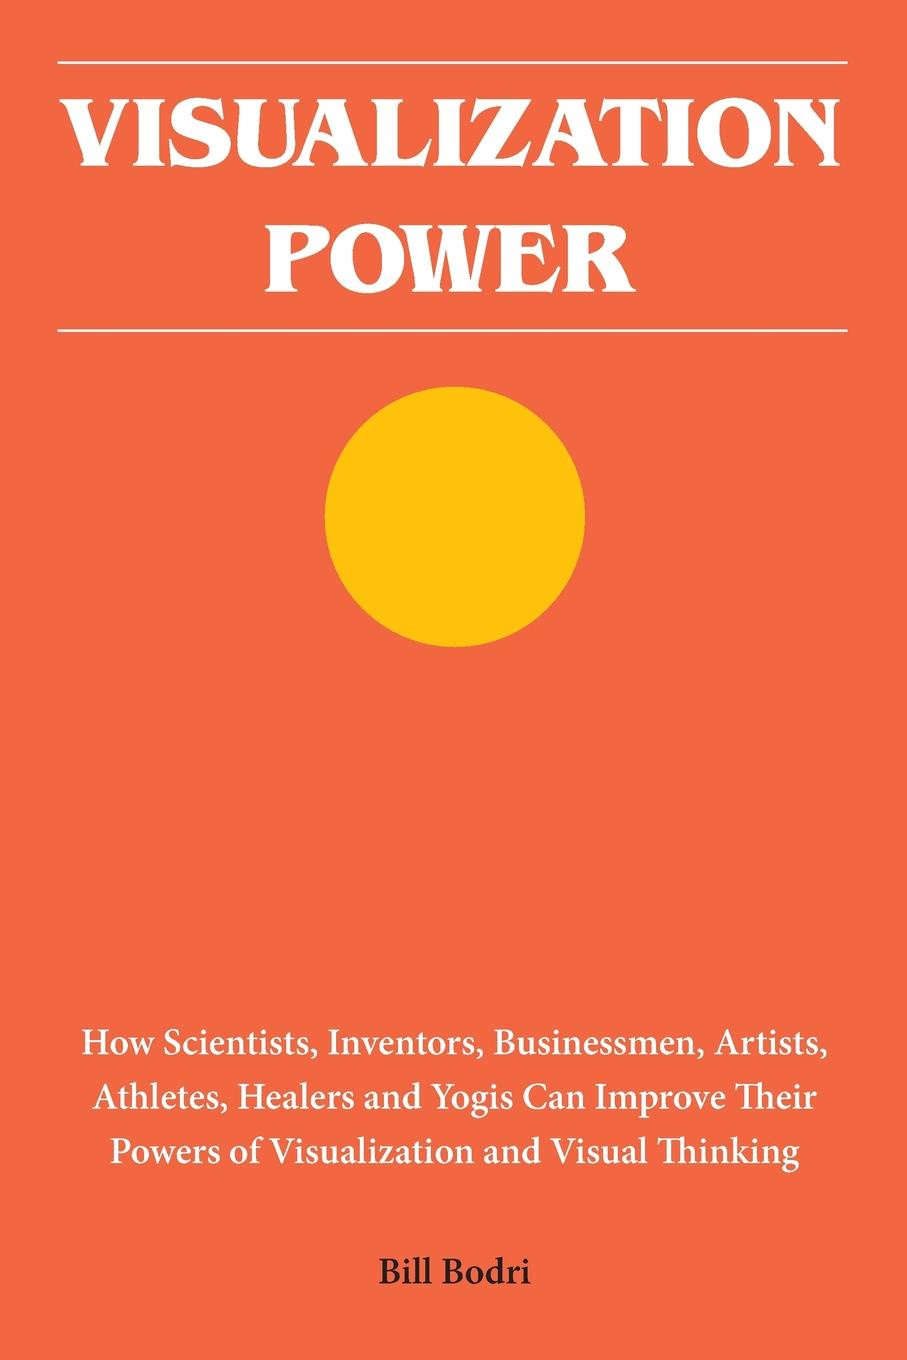 Фото - Bill Bodri Visualization Power. How Scientists, Inventors, Businessmen, Artists, Athletes, Healers and Yogis Can Improve Their Powers of Visualization and Visual Thinking terry mcmorris acquisition and performance of sports skills